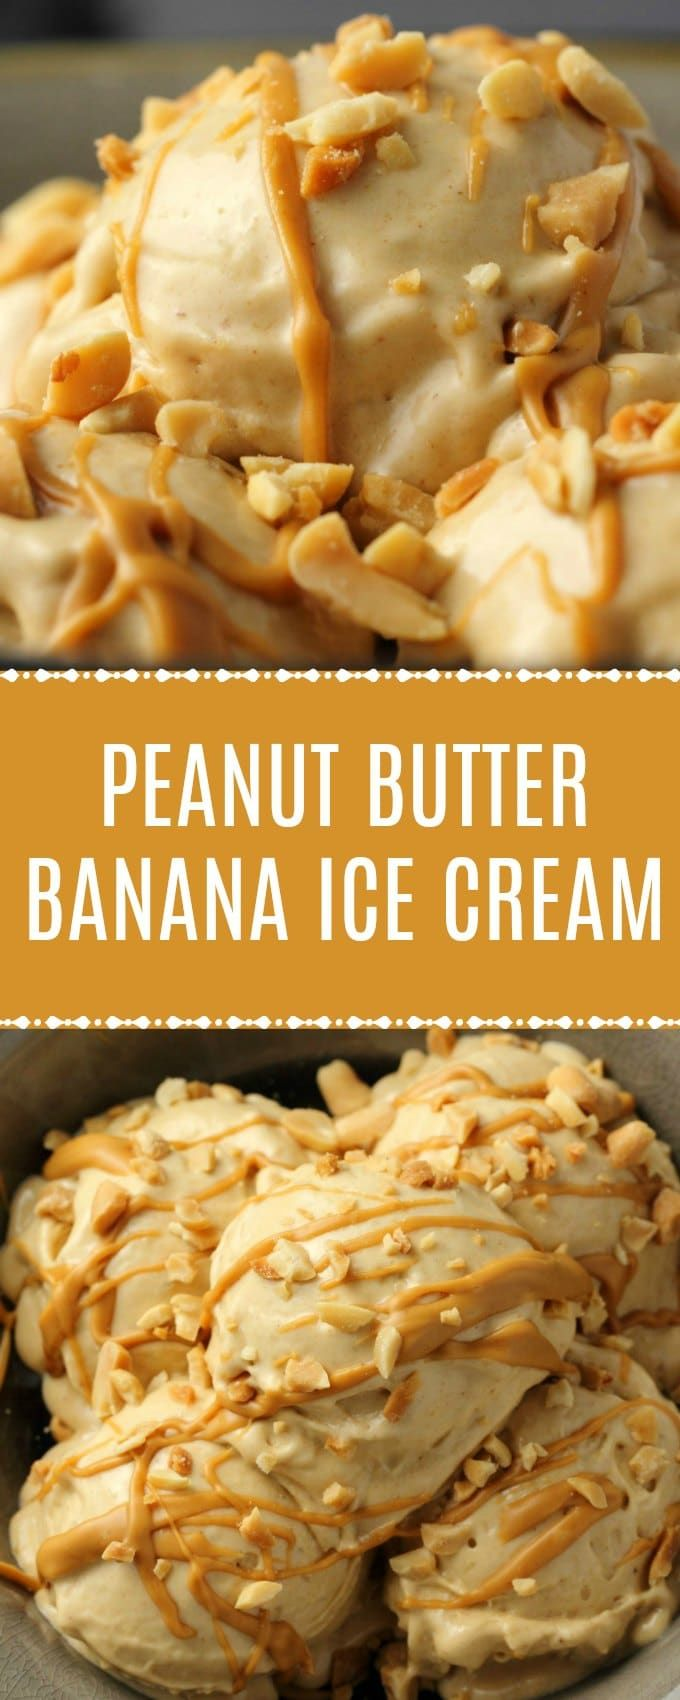 Peanut Butter Banana Ice Cream  2 Ingredients is part of Banana ice cream - Smooth and velvety peanut butter banana ice cream, made with just 2ingredients and a food processor! So good you'd never suspect it's healthy too! Simple, delicious, vegan and glutenfree